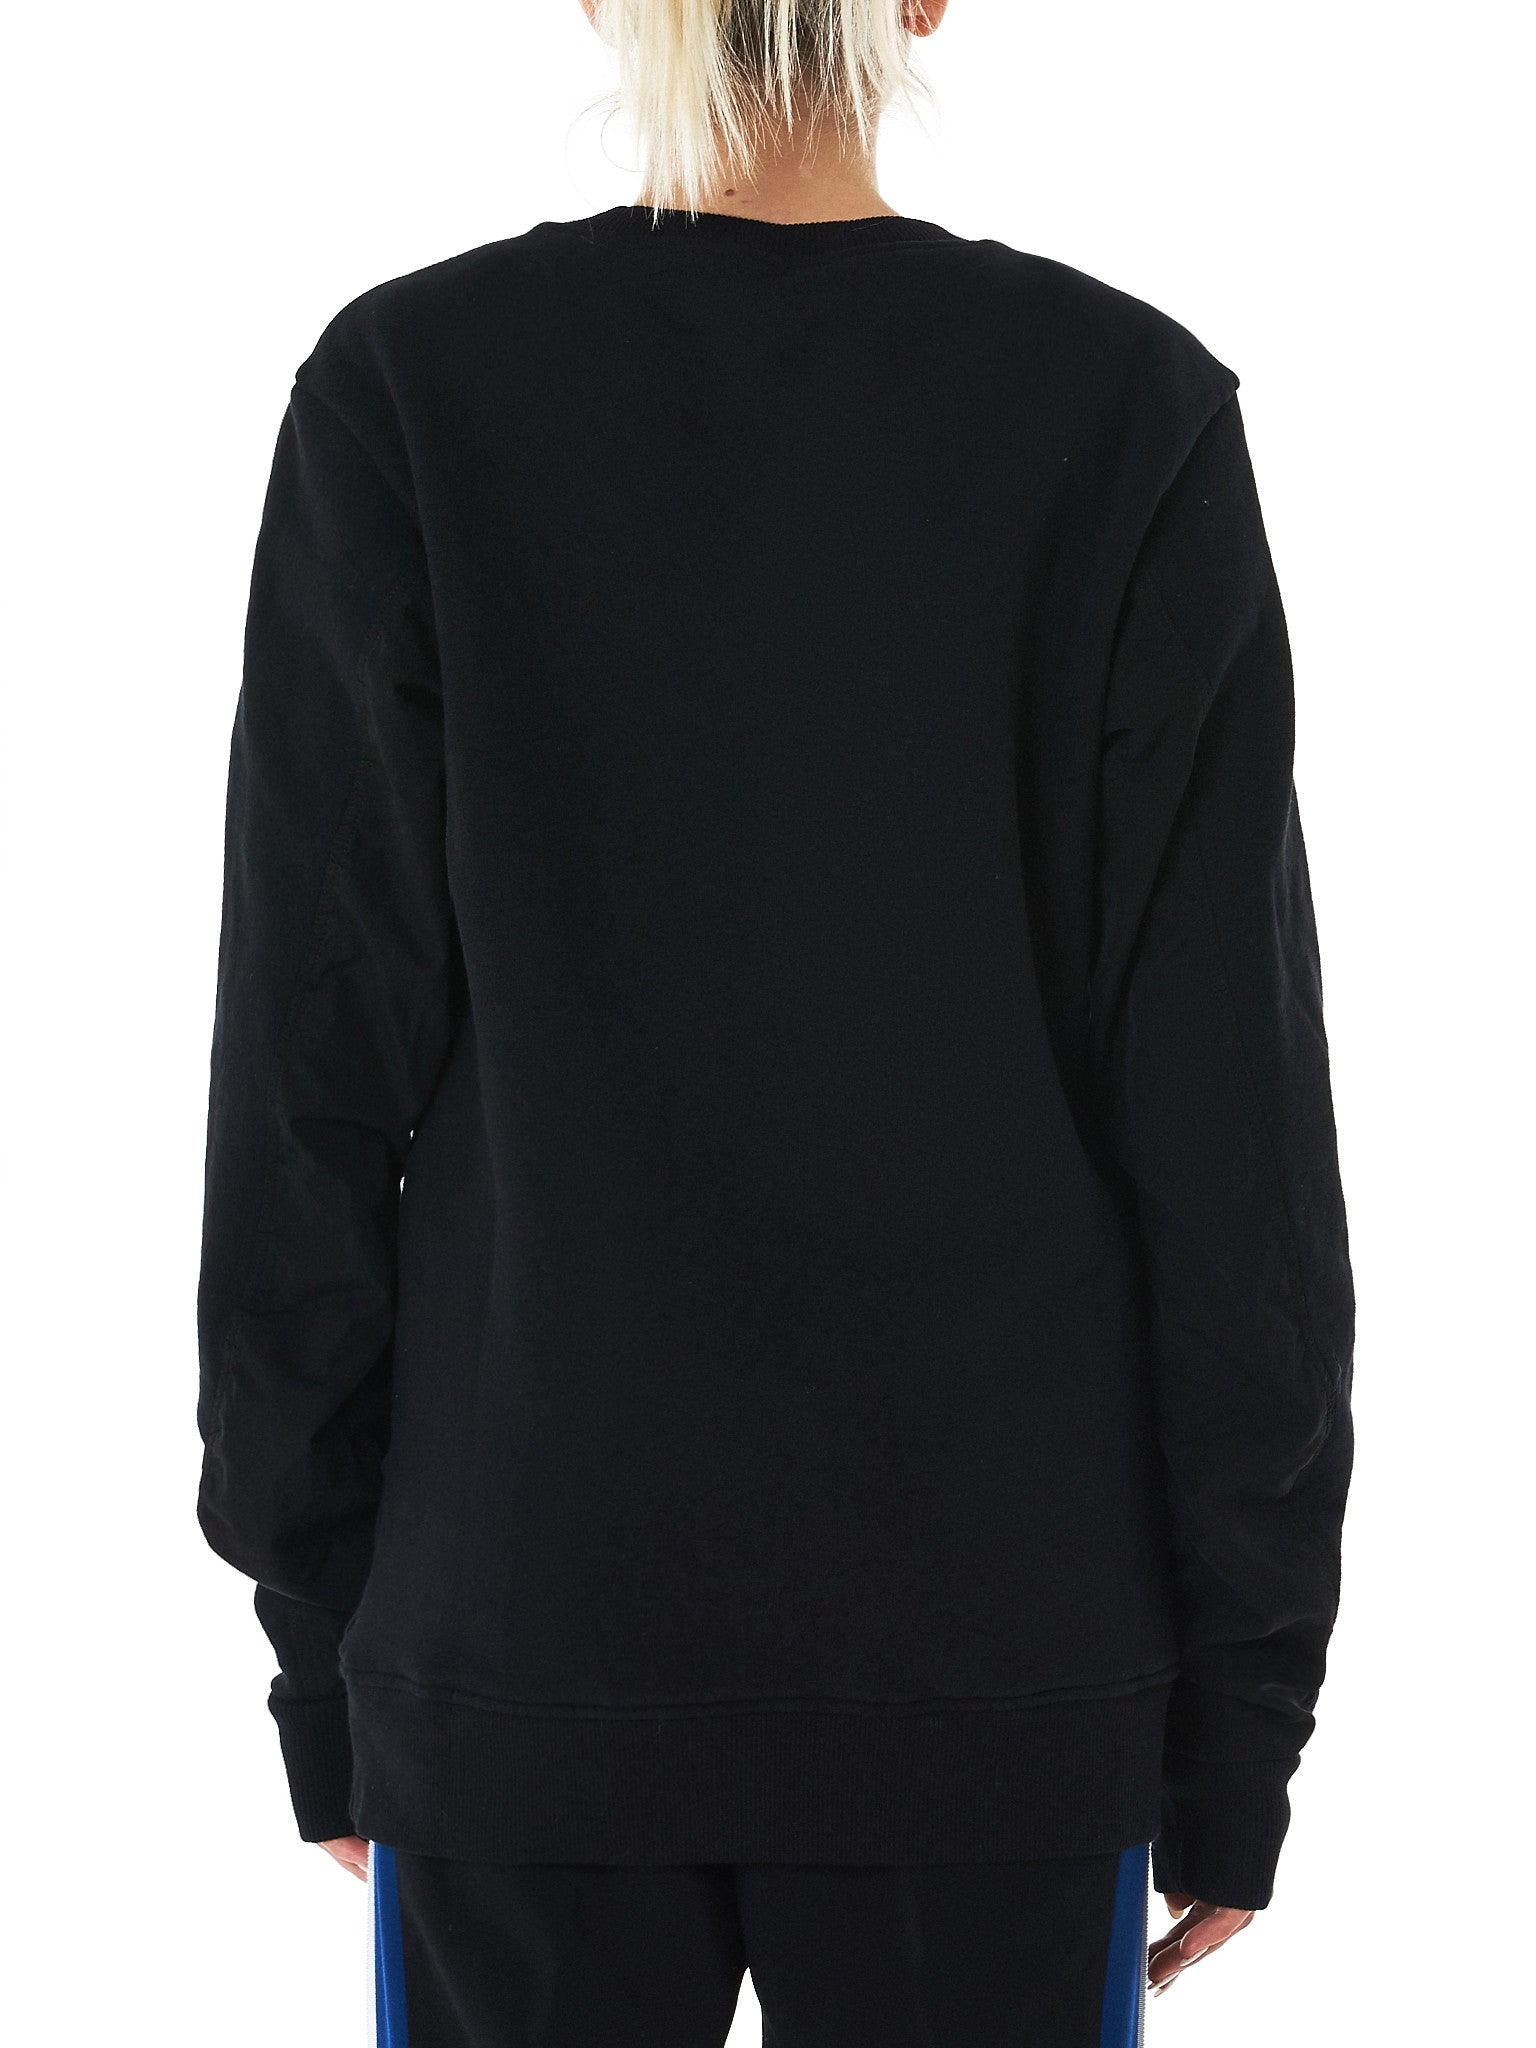 Tim Coppens-HLorenzo-sweater rear view